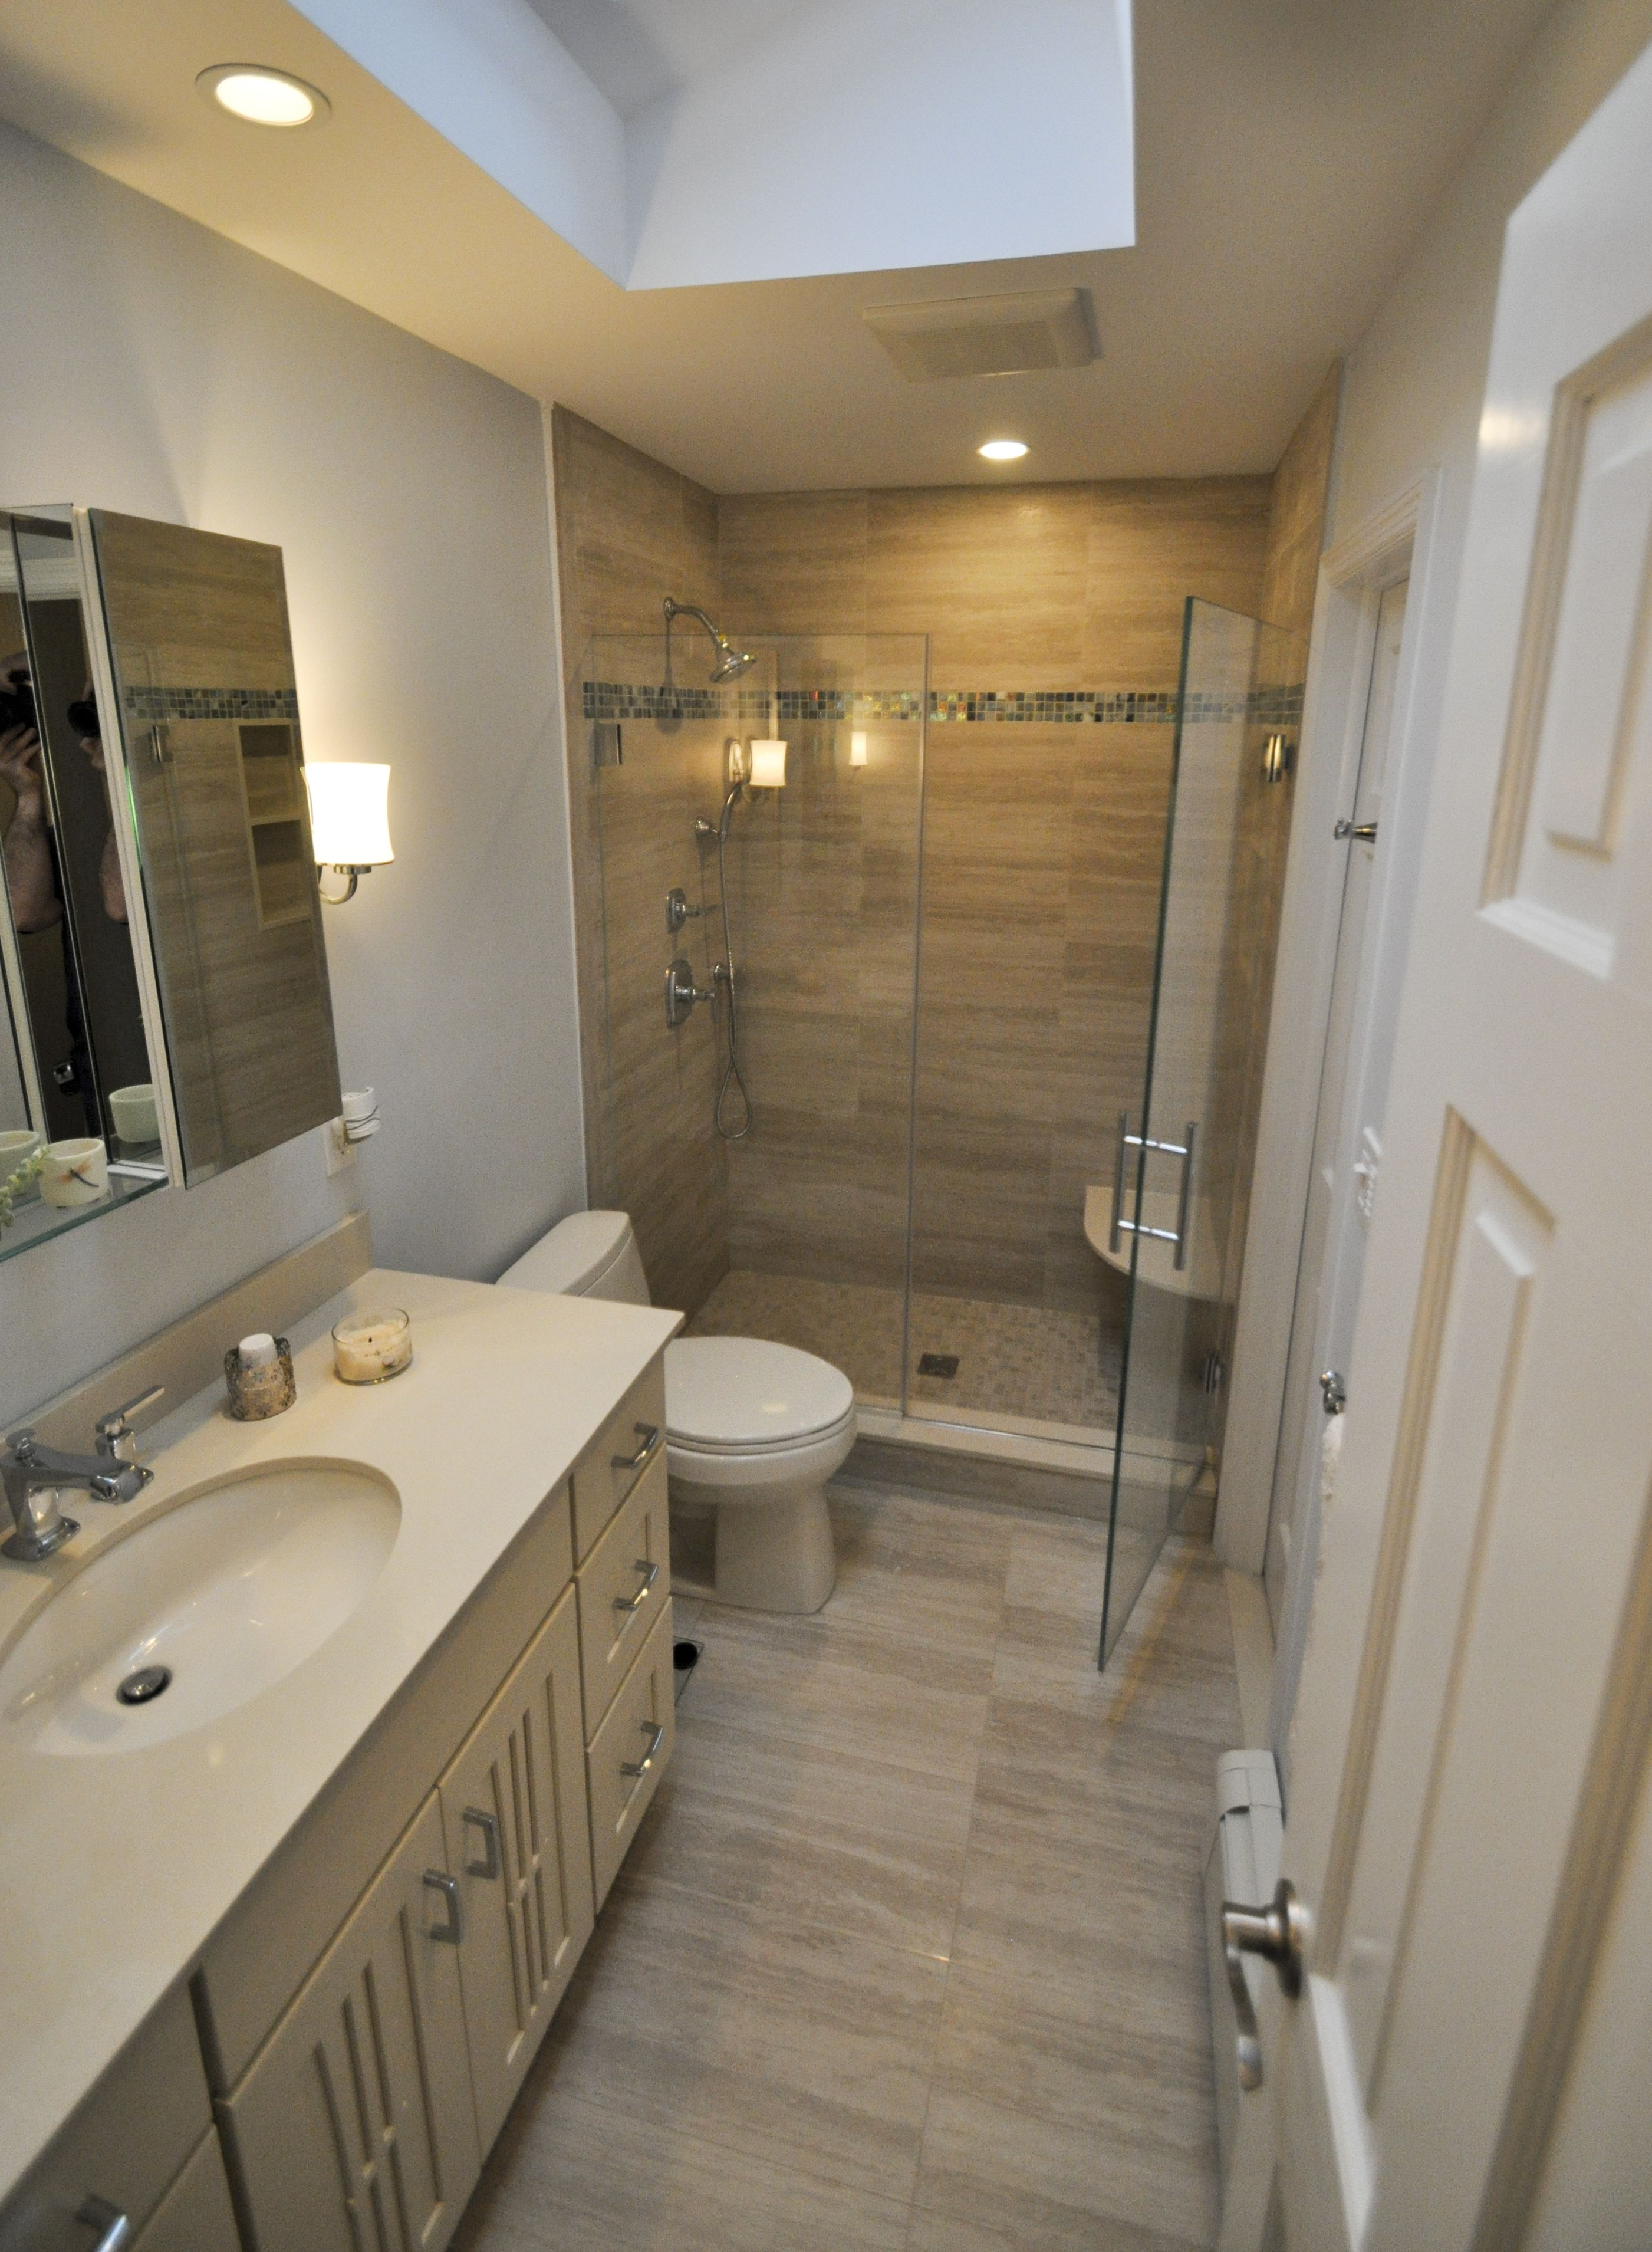 9×5 Bathroom With Stand Up Shower Design That I Love In 2019 – layjao